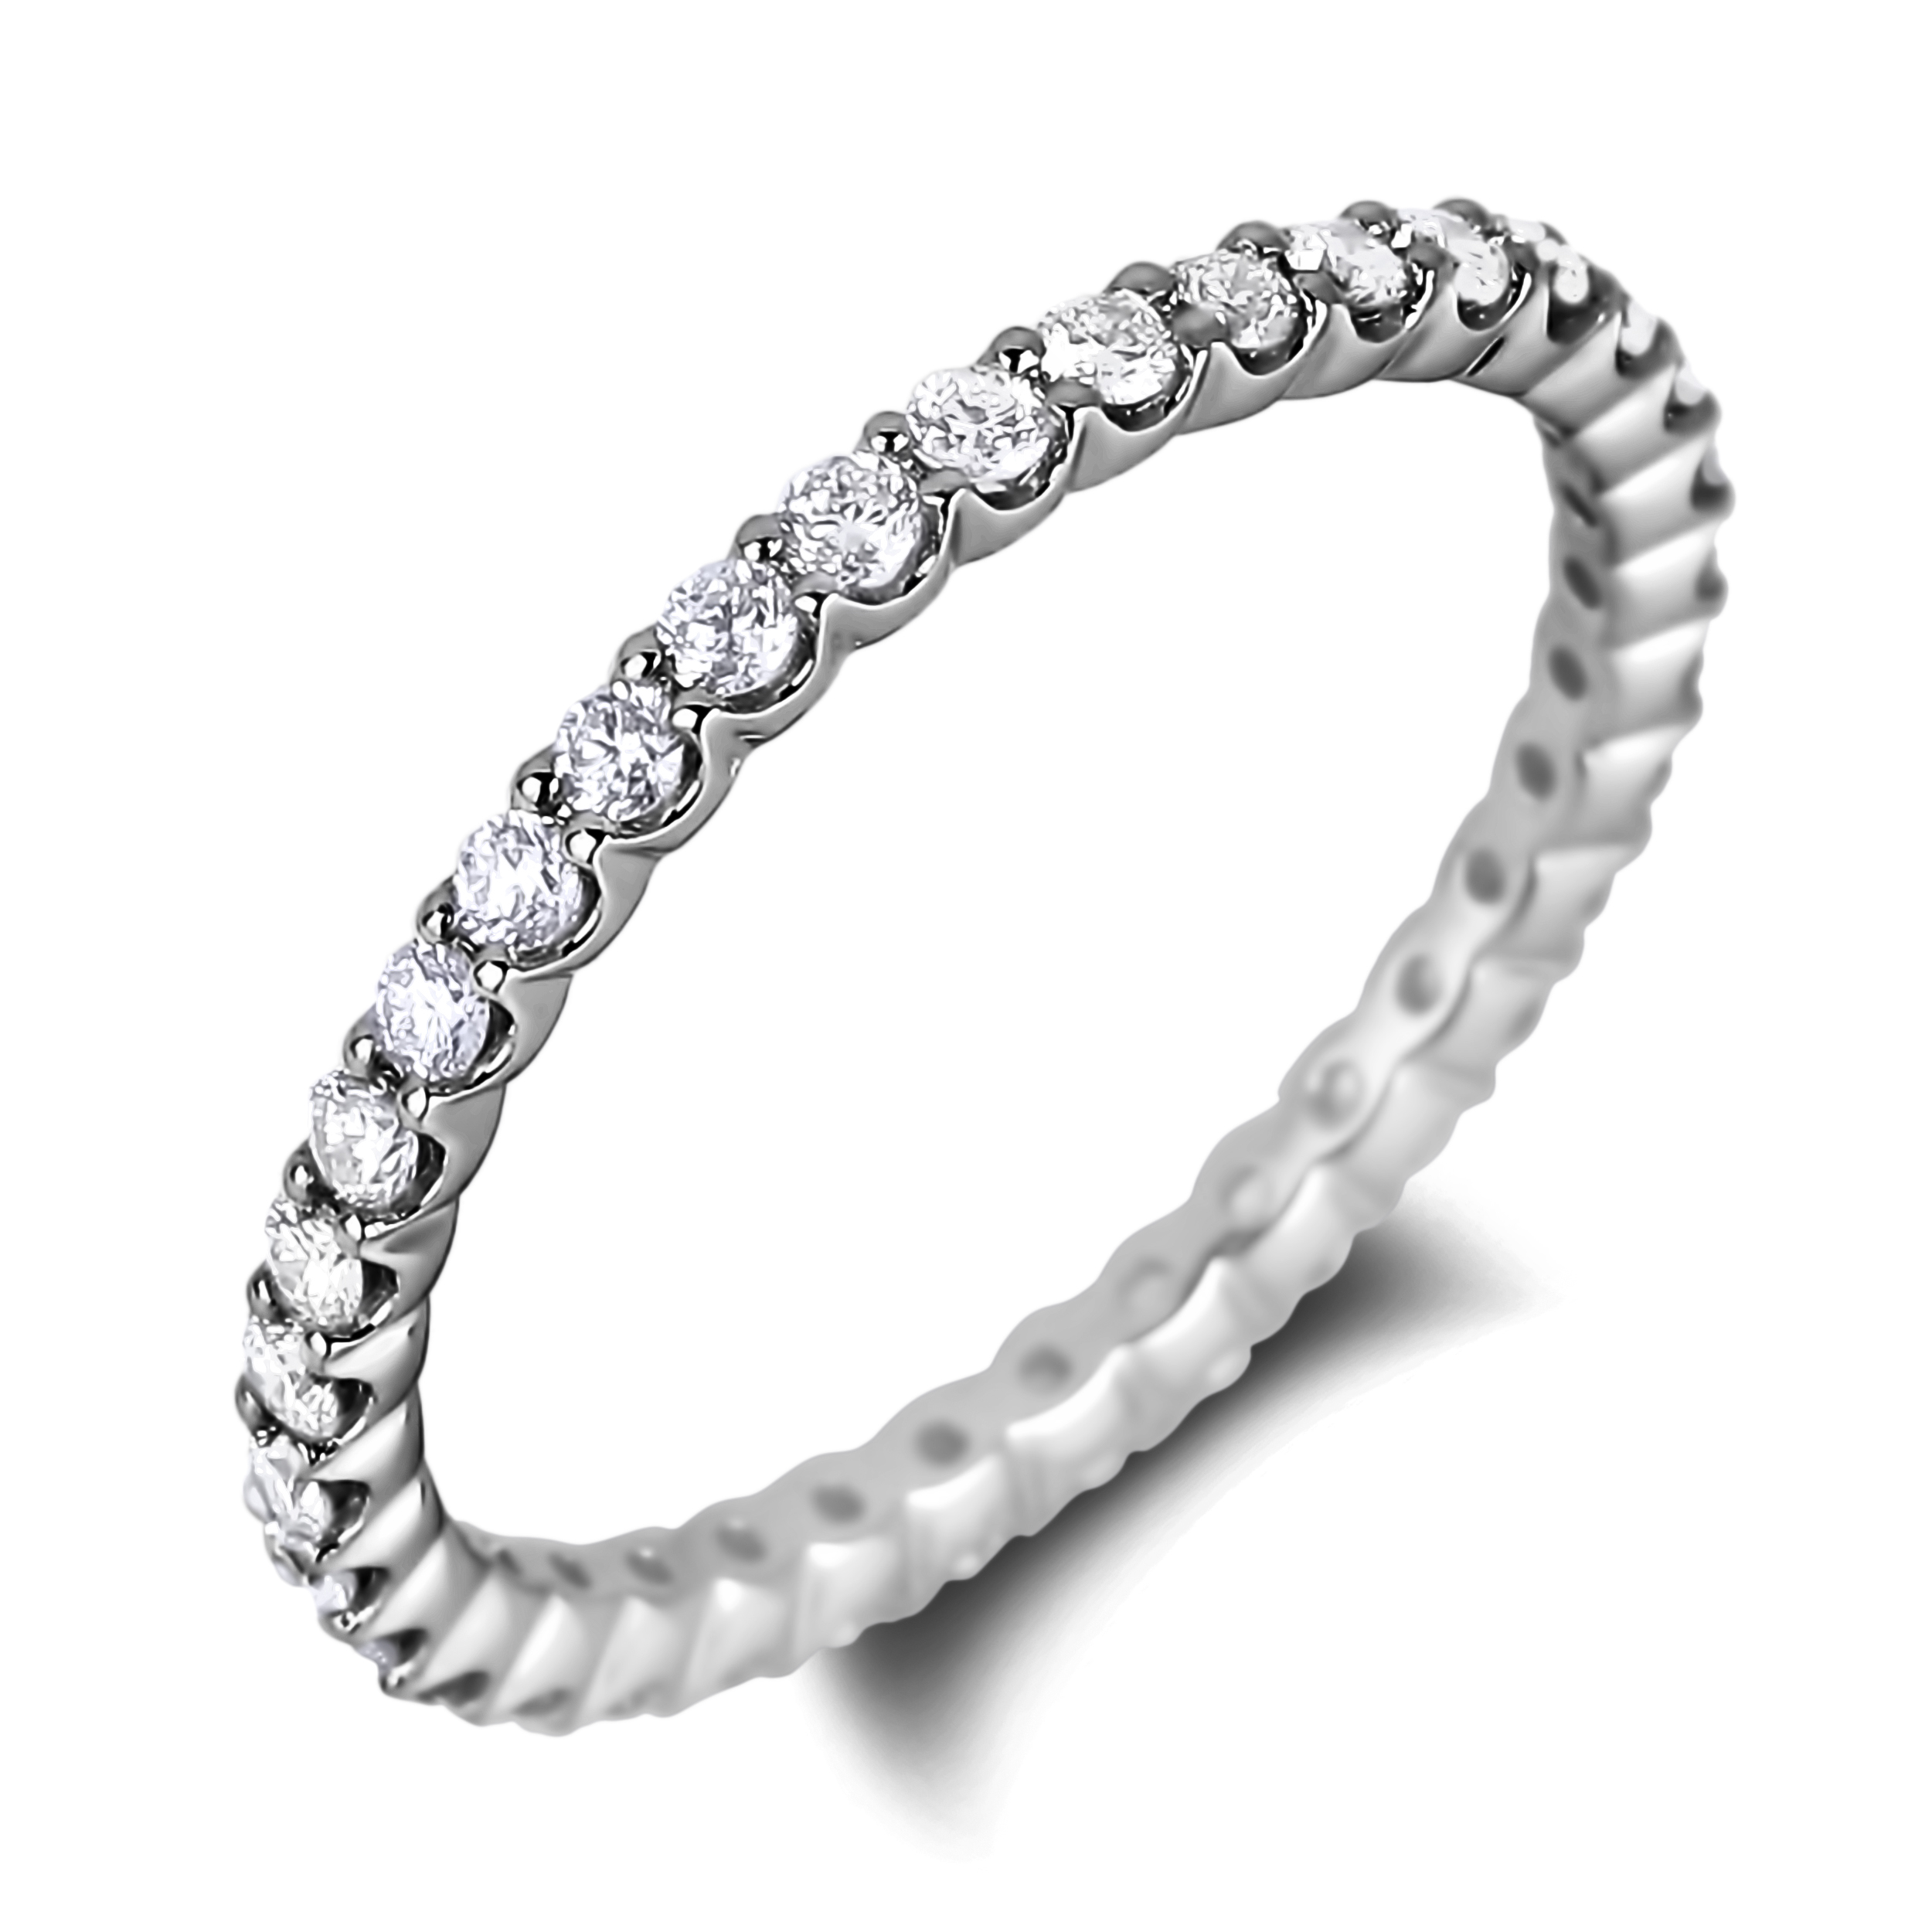 This is a picture of Diamond Eternity Wedding Band Ring